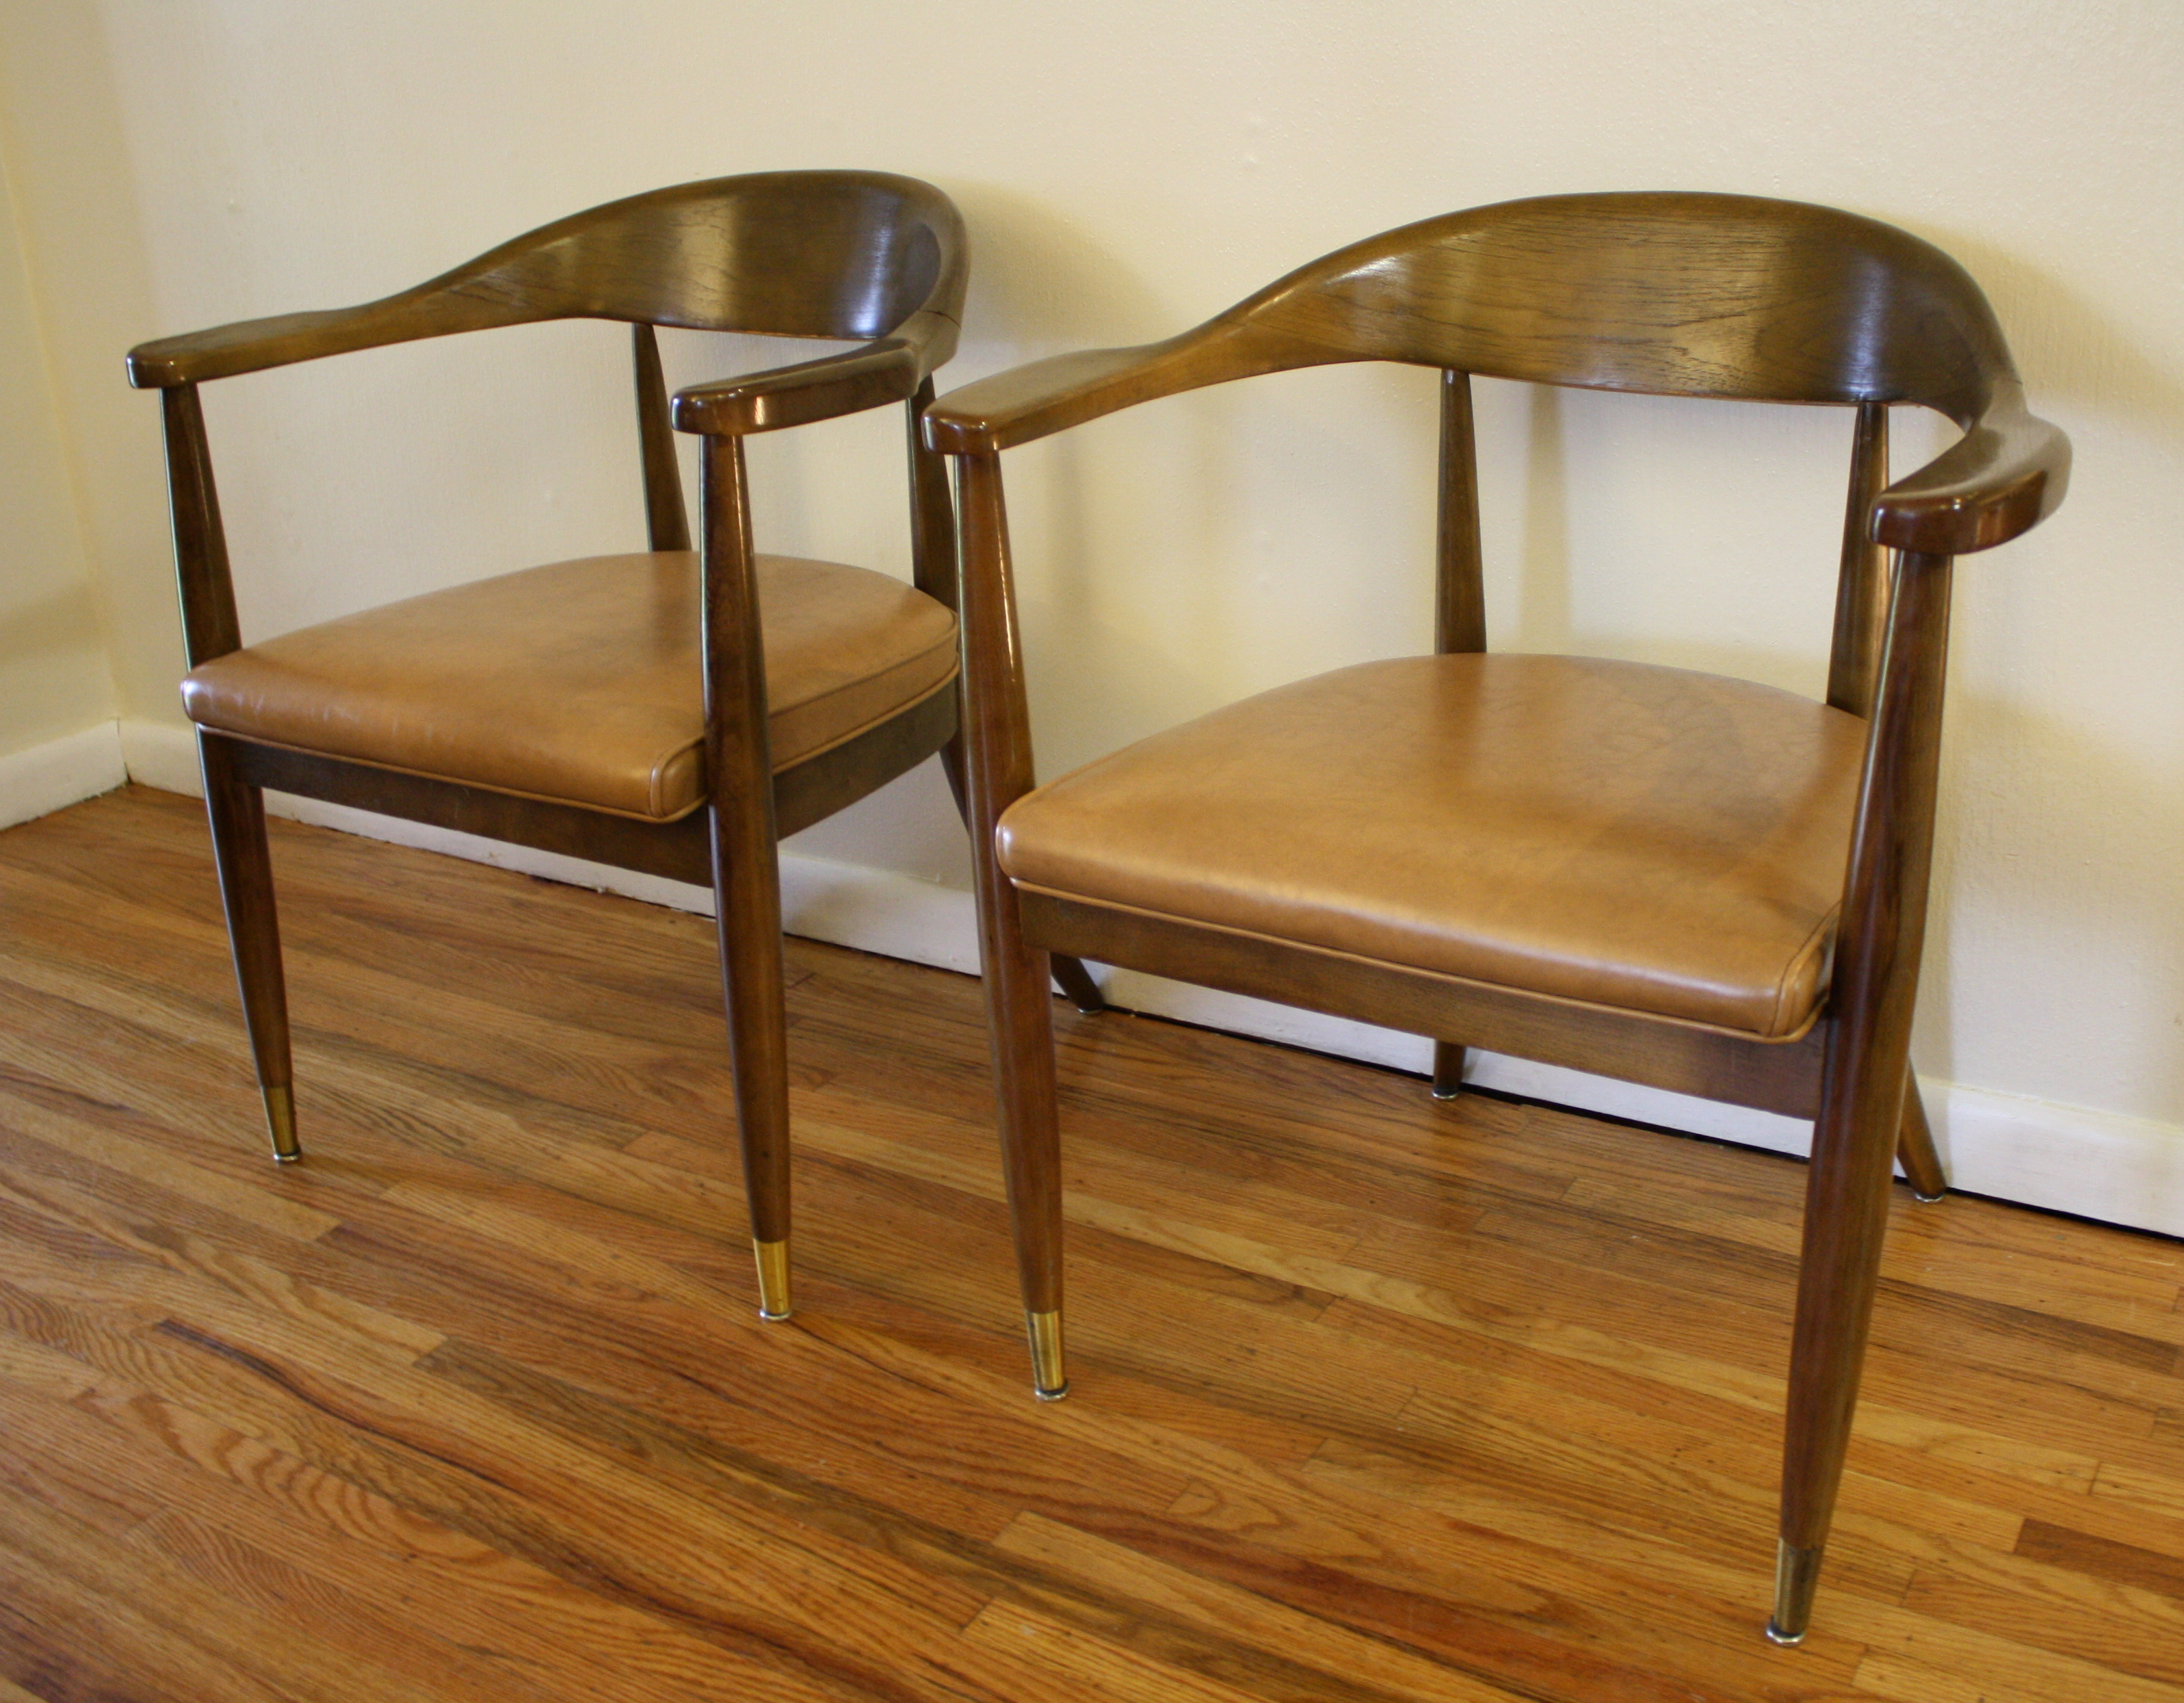 Mid century modern chairs by the boling chair company for Modern furniture companies